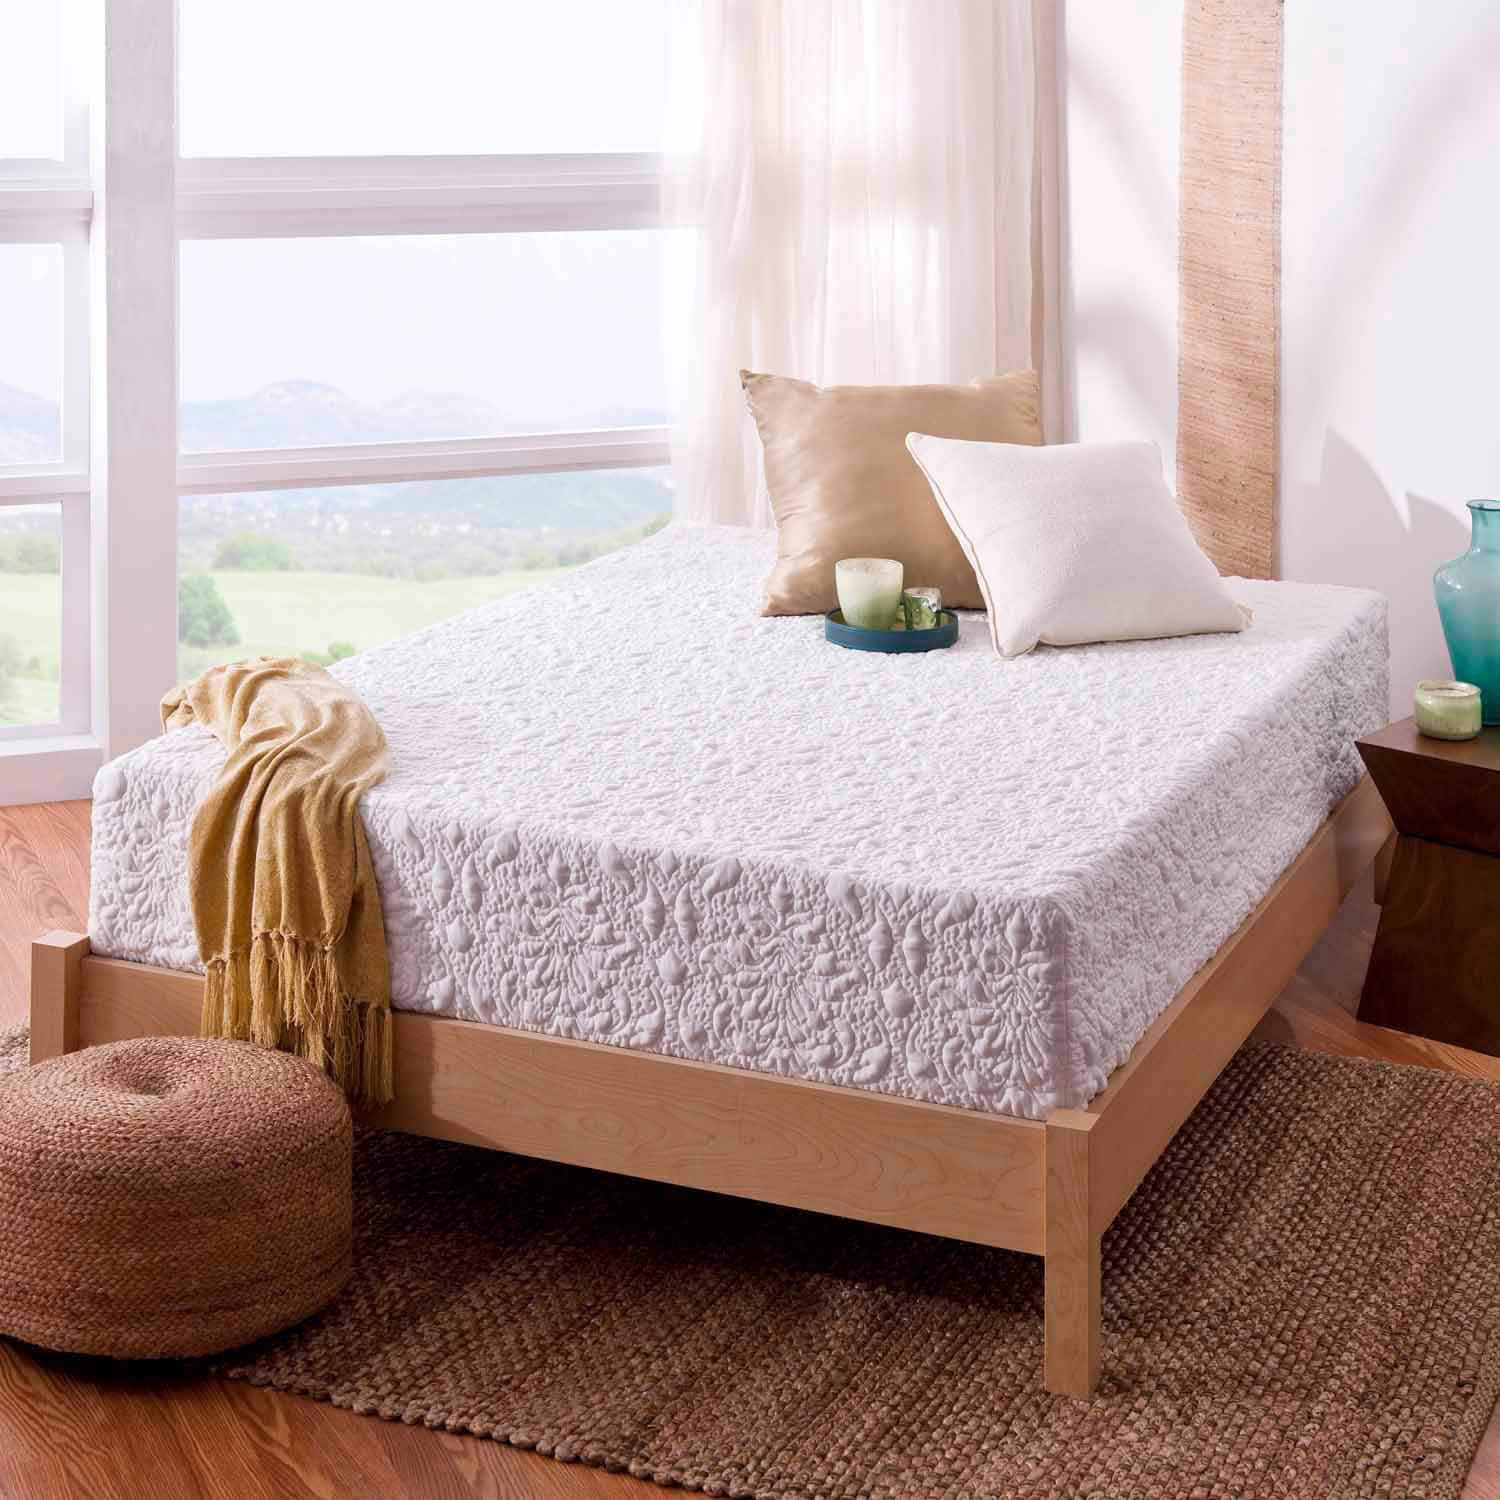 "Spa Sensations 12"" Memory Foam Mattress (King, Queen, Full, Twin) from $179 + Free Shipping"